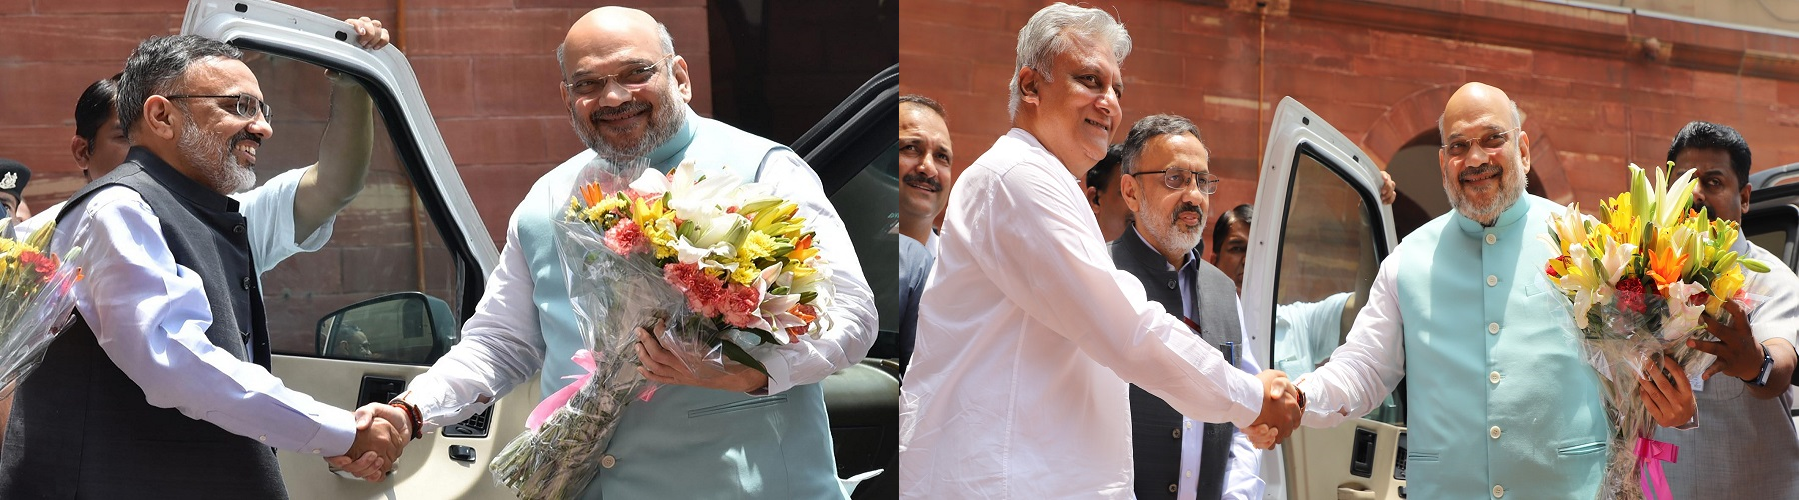 On reaching his office on Saturday, June 1, 2019 in North Block, New Delhi, Mr. Amit Shah, Union Home Minister welcomed by Mr. Rajiv Gauba, the Central Home Secretary and other officers.